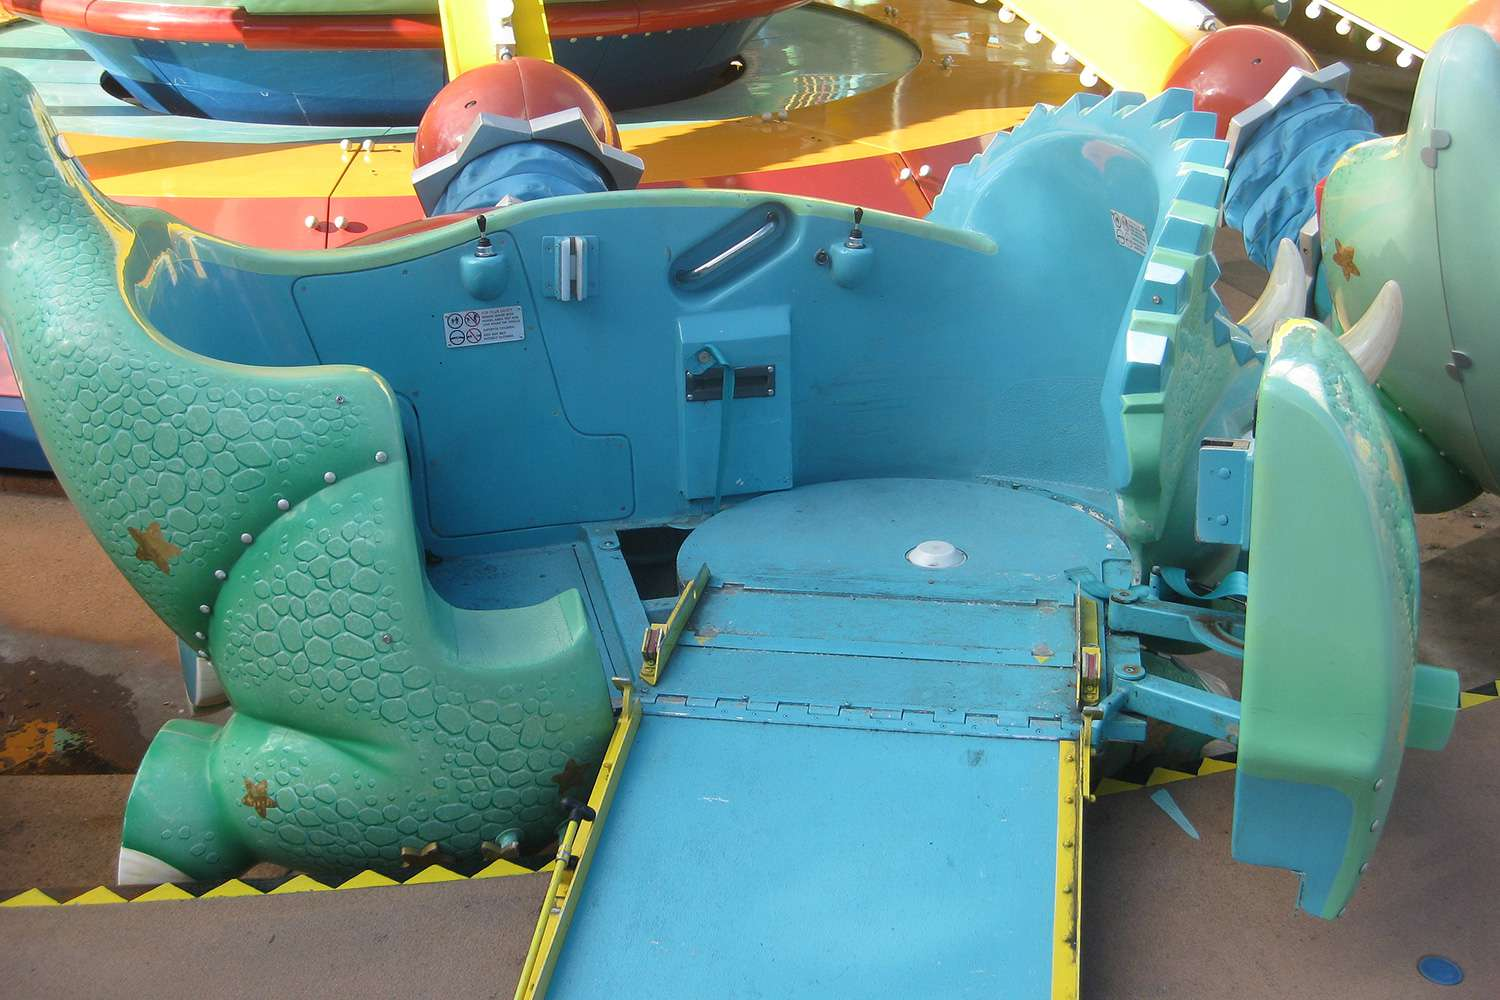 Wheelchair accessible TriceraTop Spin at Walt Disney World